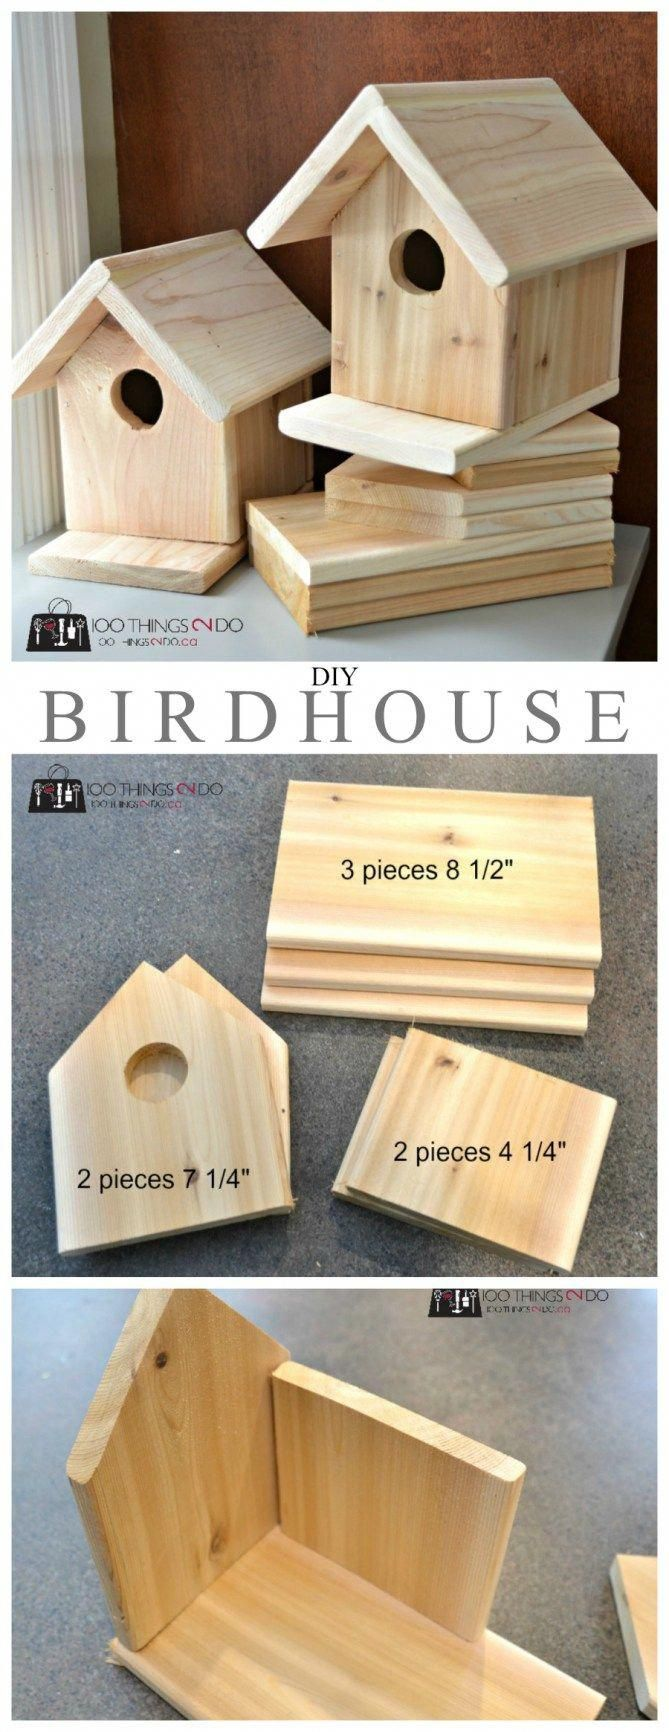 beginner woodworking woodworkingprojects woodworking on useful diy wood project ideas beginner woodworking plans id=14474